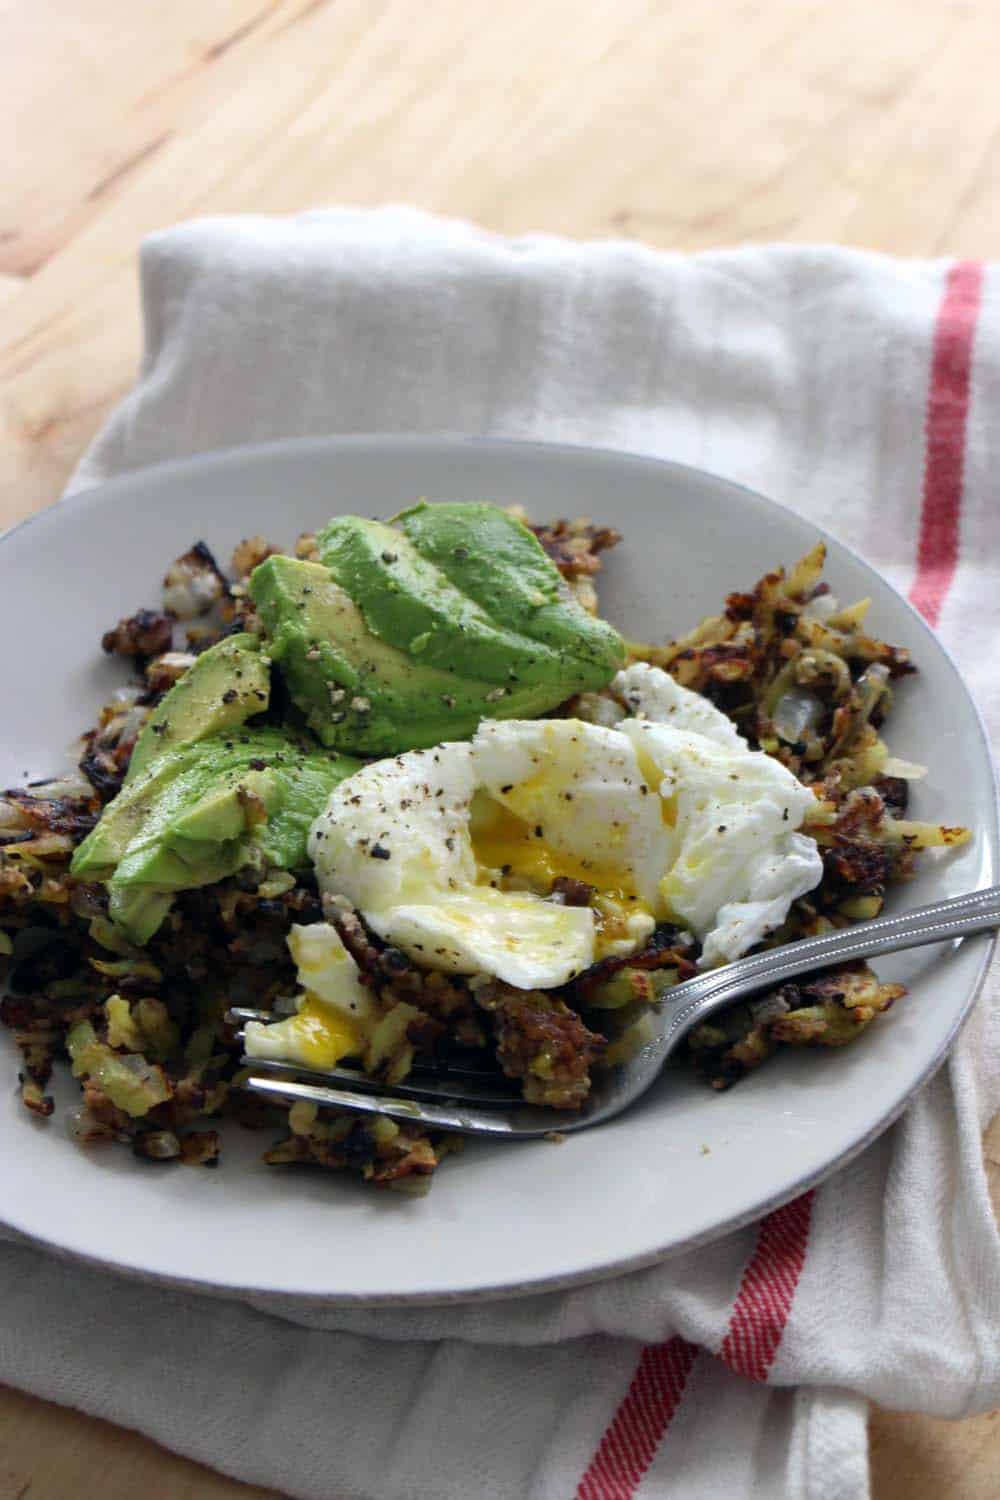 Veggie Burger Hash Browns | Like the vegetarian version of corned beef hash- an awesome way to use up leftover veggie burgers or fritters! Delicious, cheap, quick, and easy. Top with a poached egg and/or avocado for a complete meal.